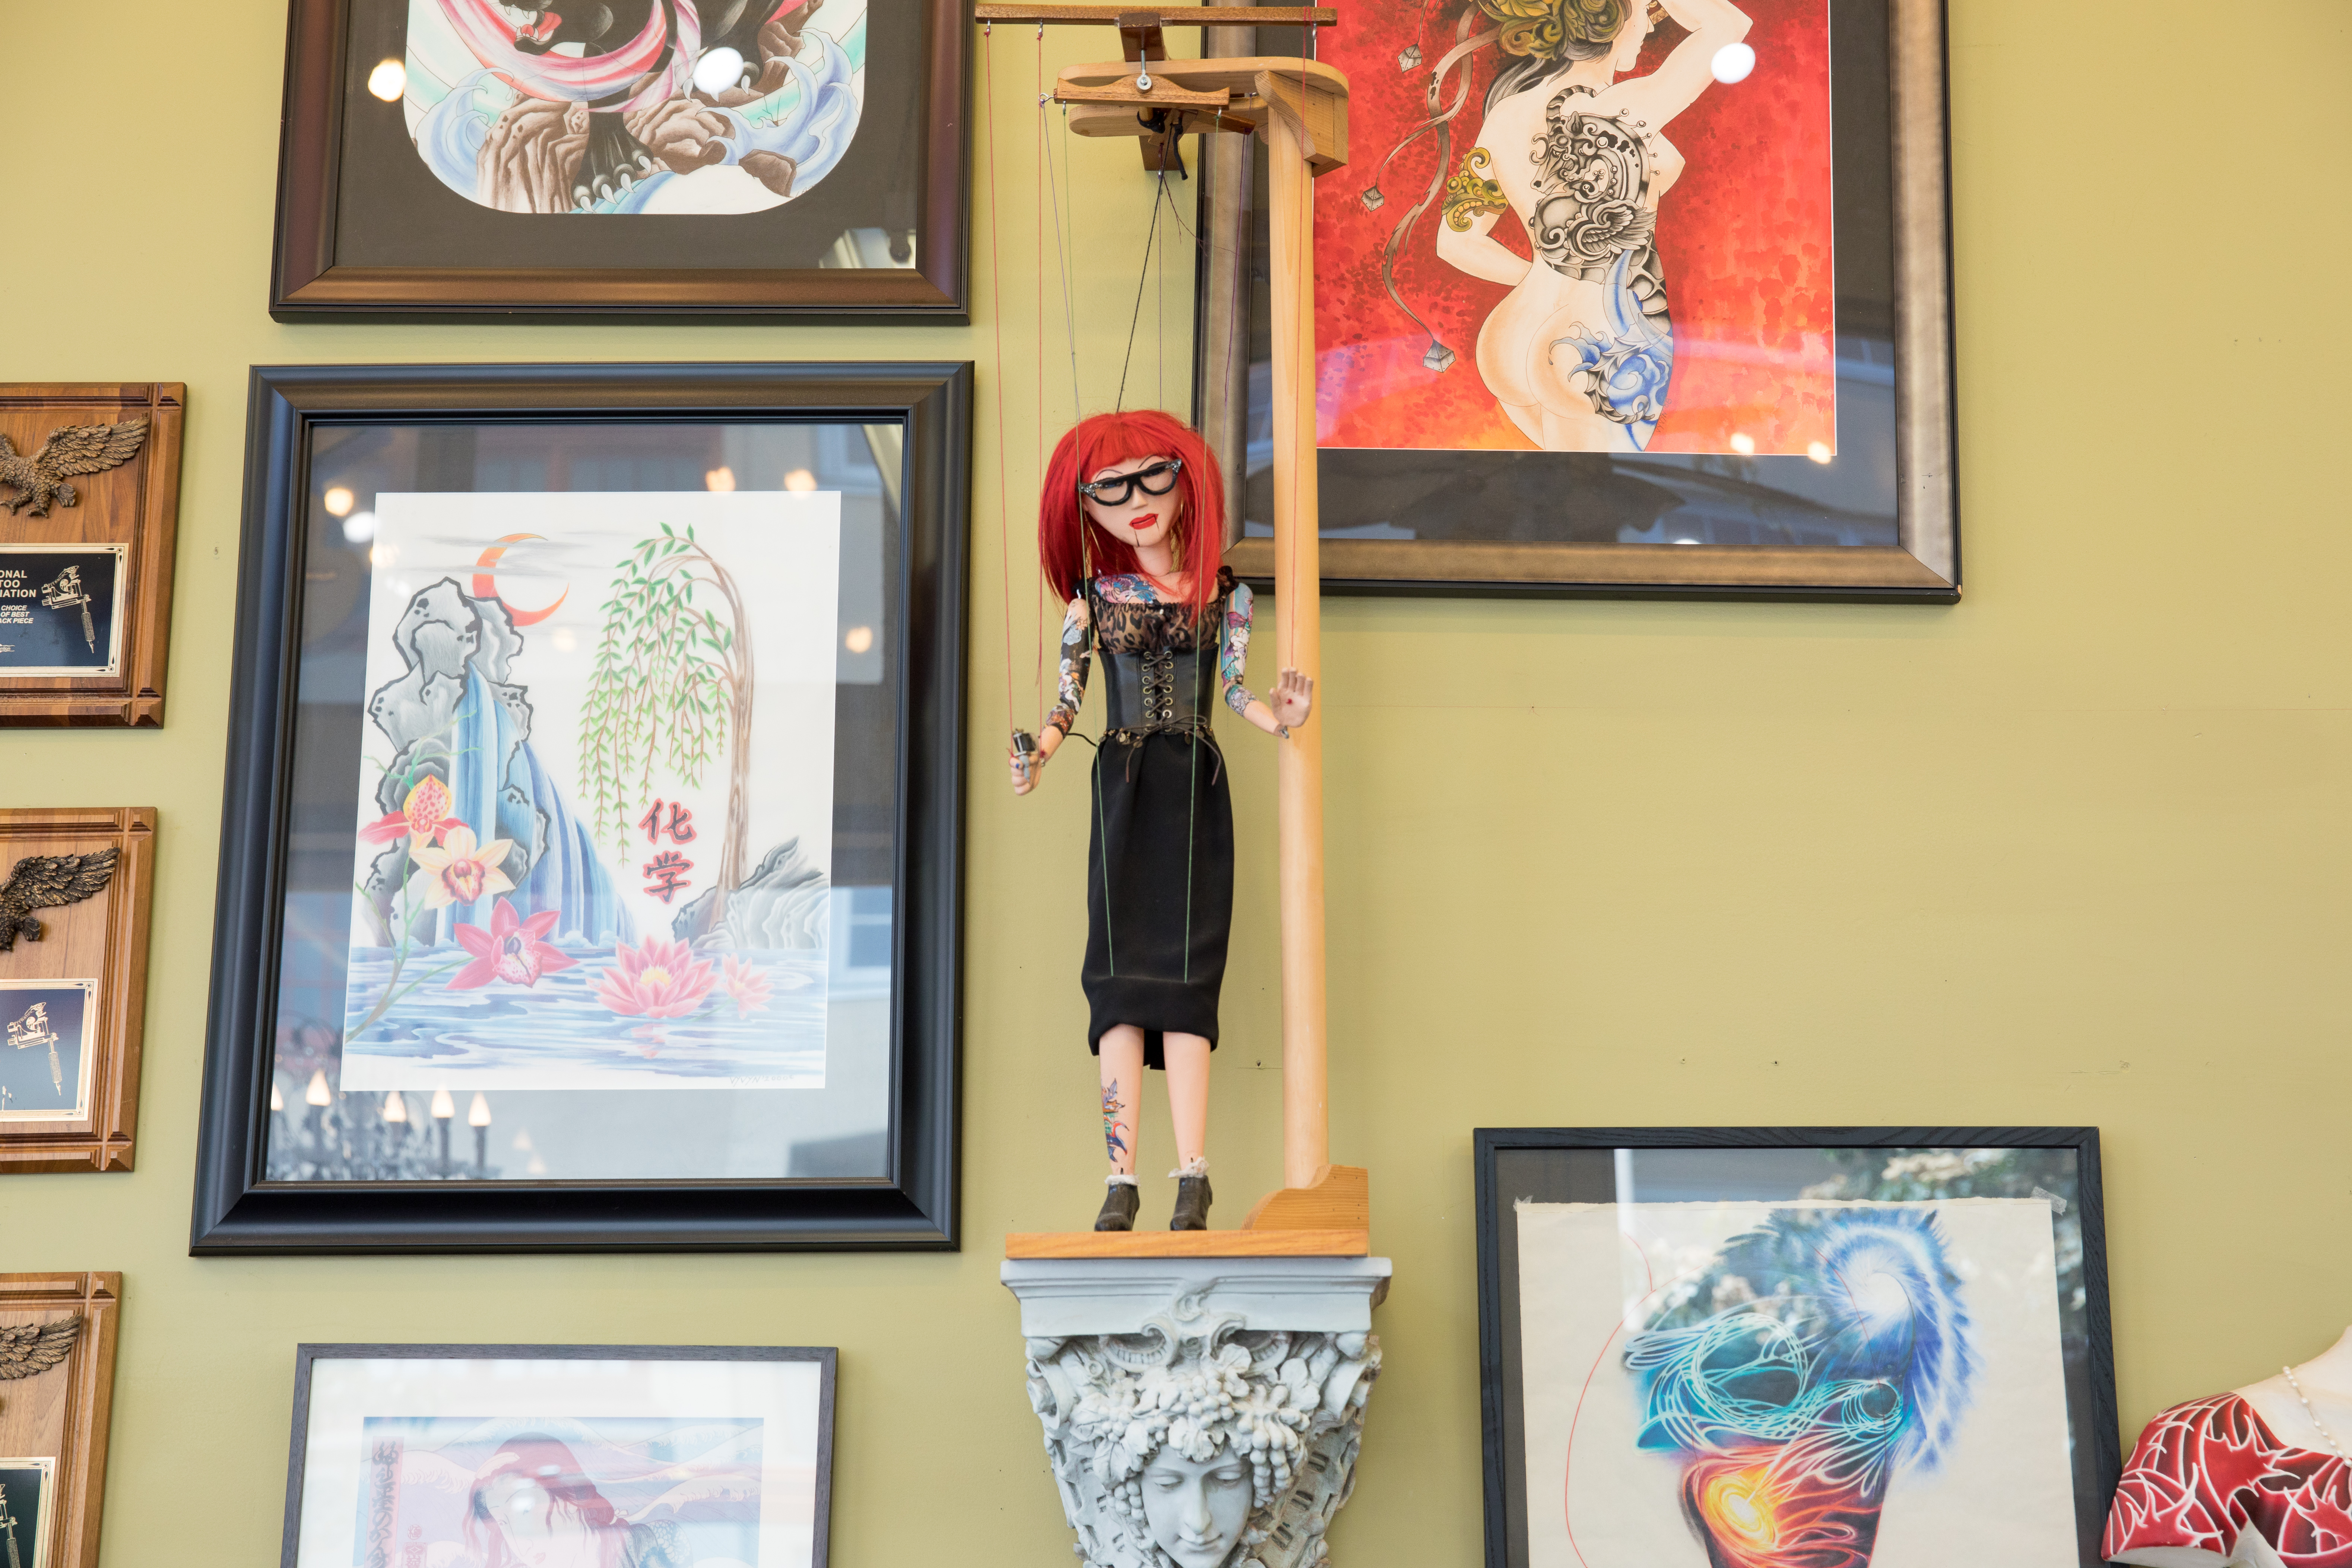 "A red-haried marionette doll made in the likeness of Vyvyn ""Madame"" Lazonga greets visitors who enter Madame Lazonga's Tattoo. Made by an ex-boyfriend of Vyvyn's, the doll is an exact image of the artist in her younger years, down to the tattoos painted on her arms. (Image: Riley Bunch / Seattle Refined)"